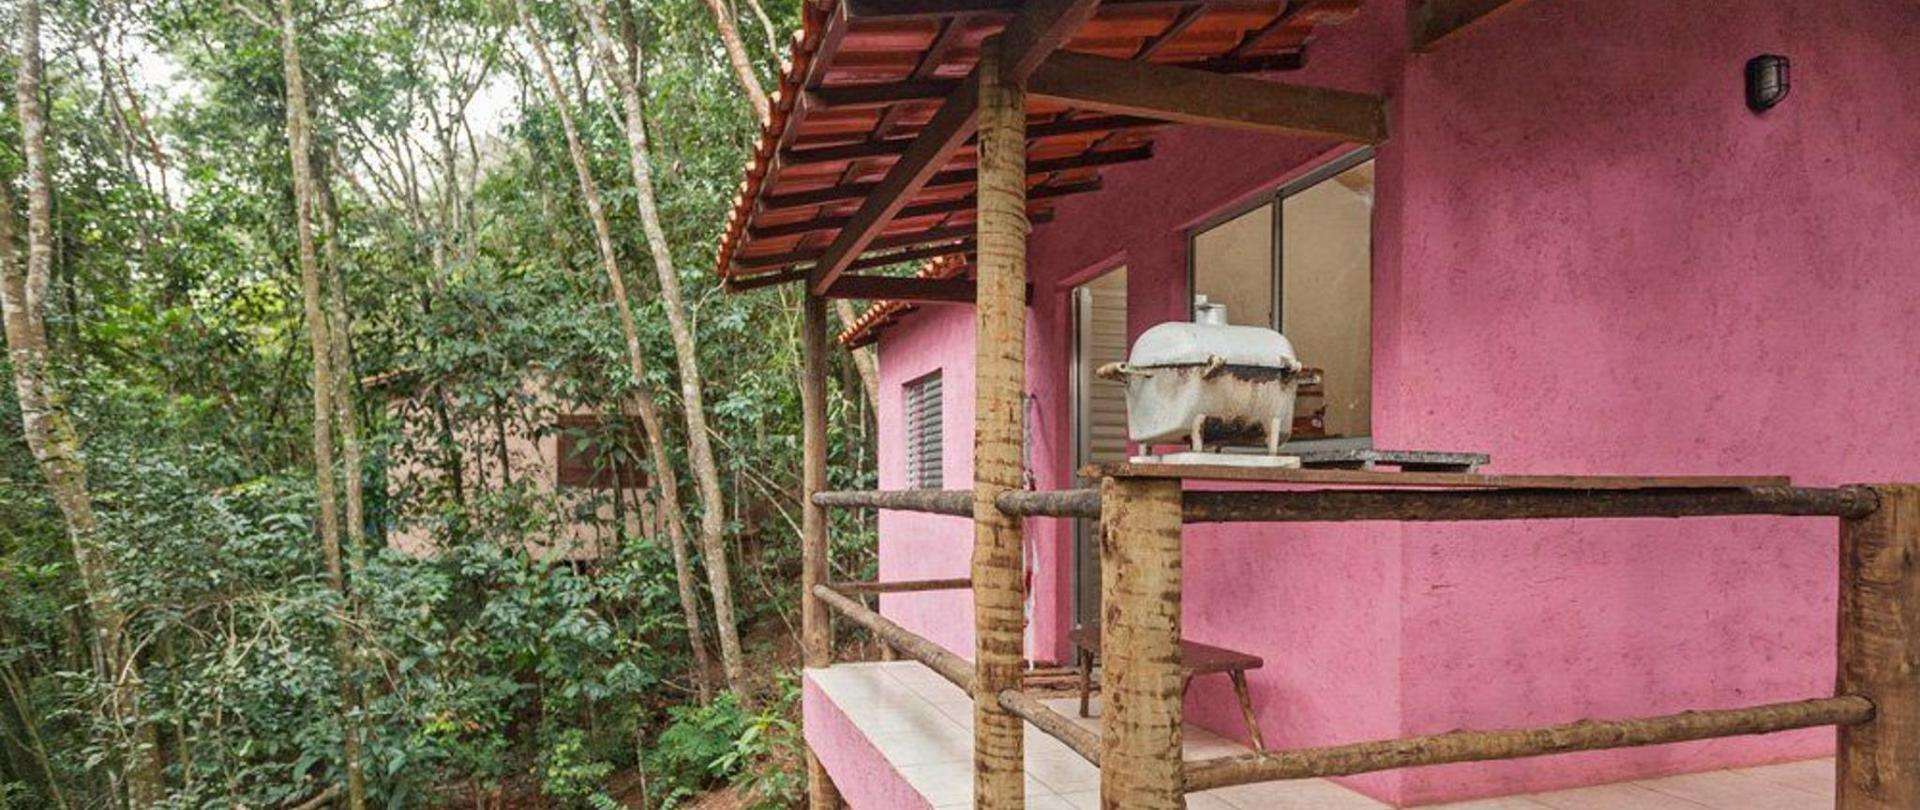 Pink chalet